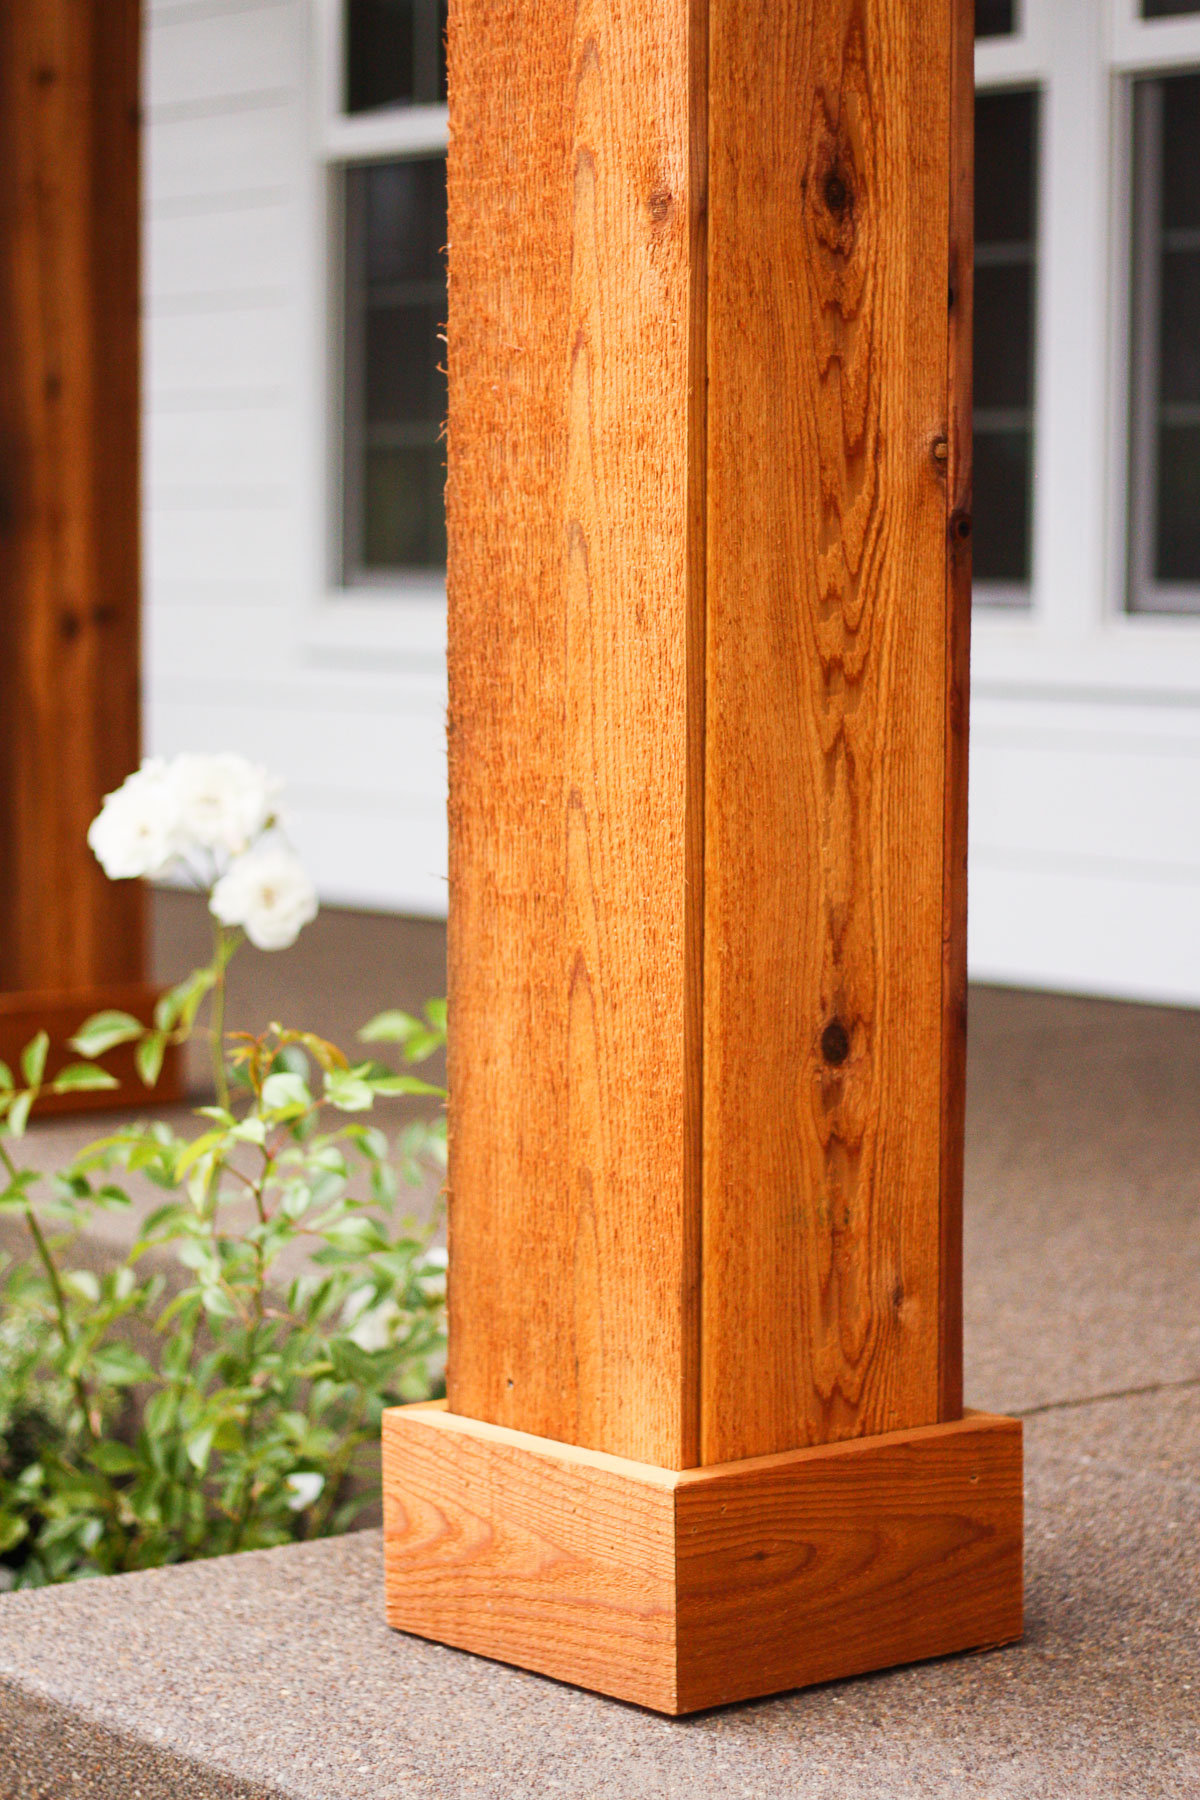 We turned the plain white front porch pillars into cedar pillars, and our porch has never looked better.